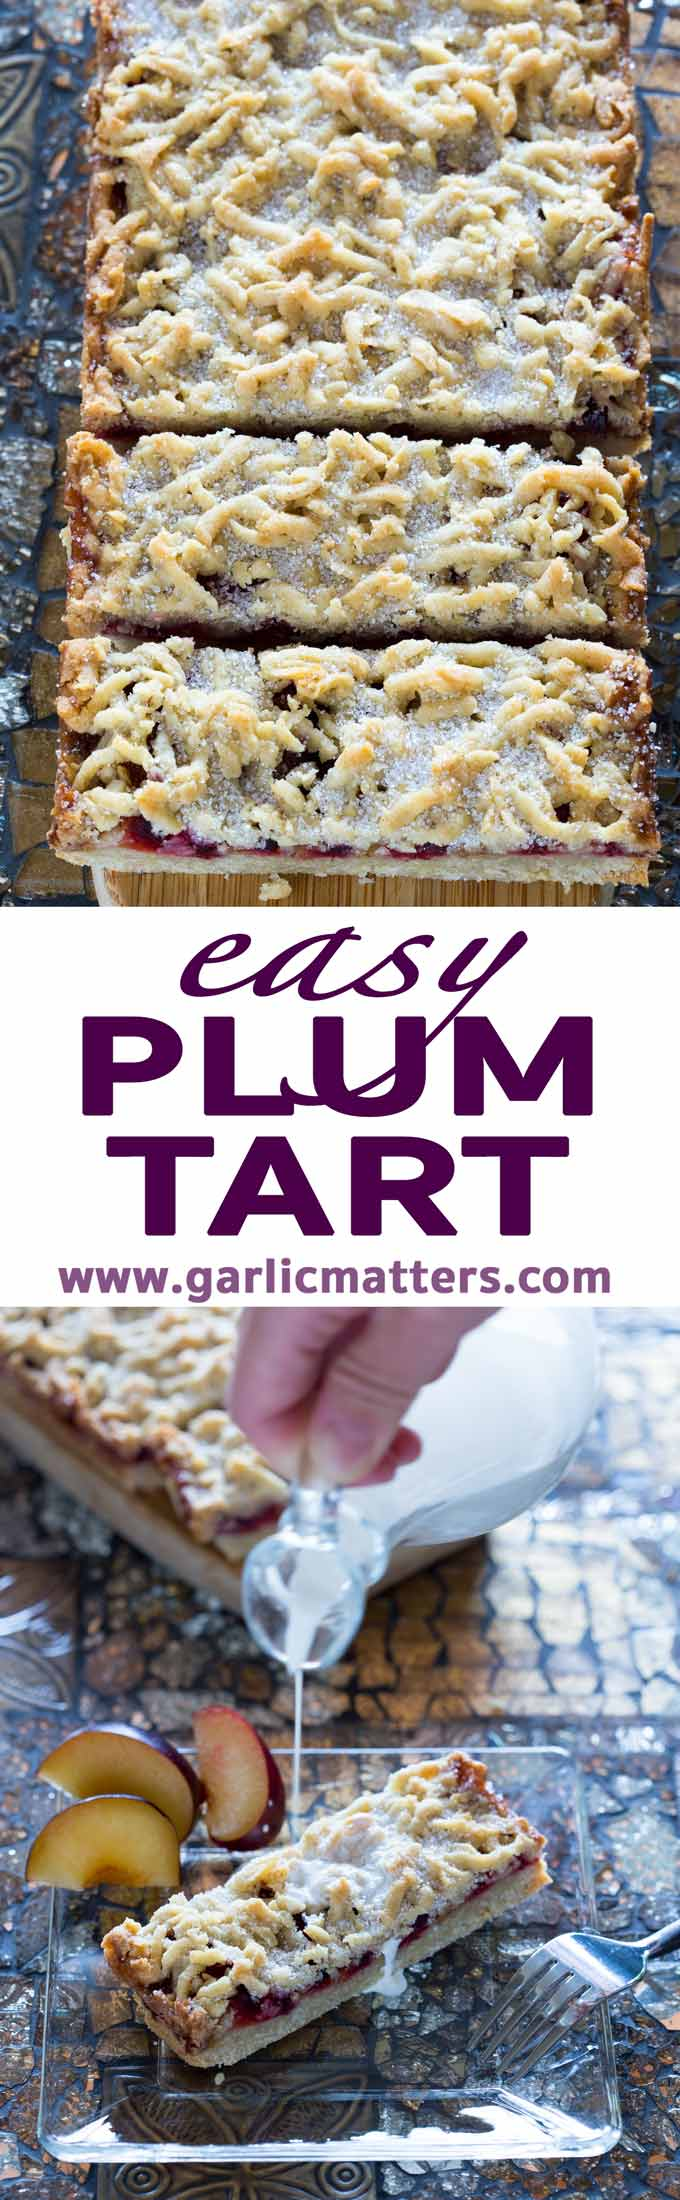 Easy, gluten free Plum Tart recipe - all you need to make your cup of tea extra special. Crumbly, juicy and sweet dessert or a snack.